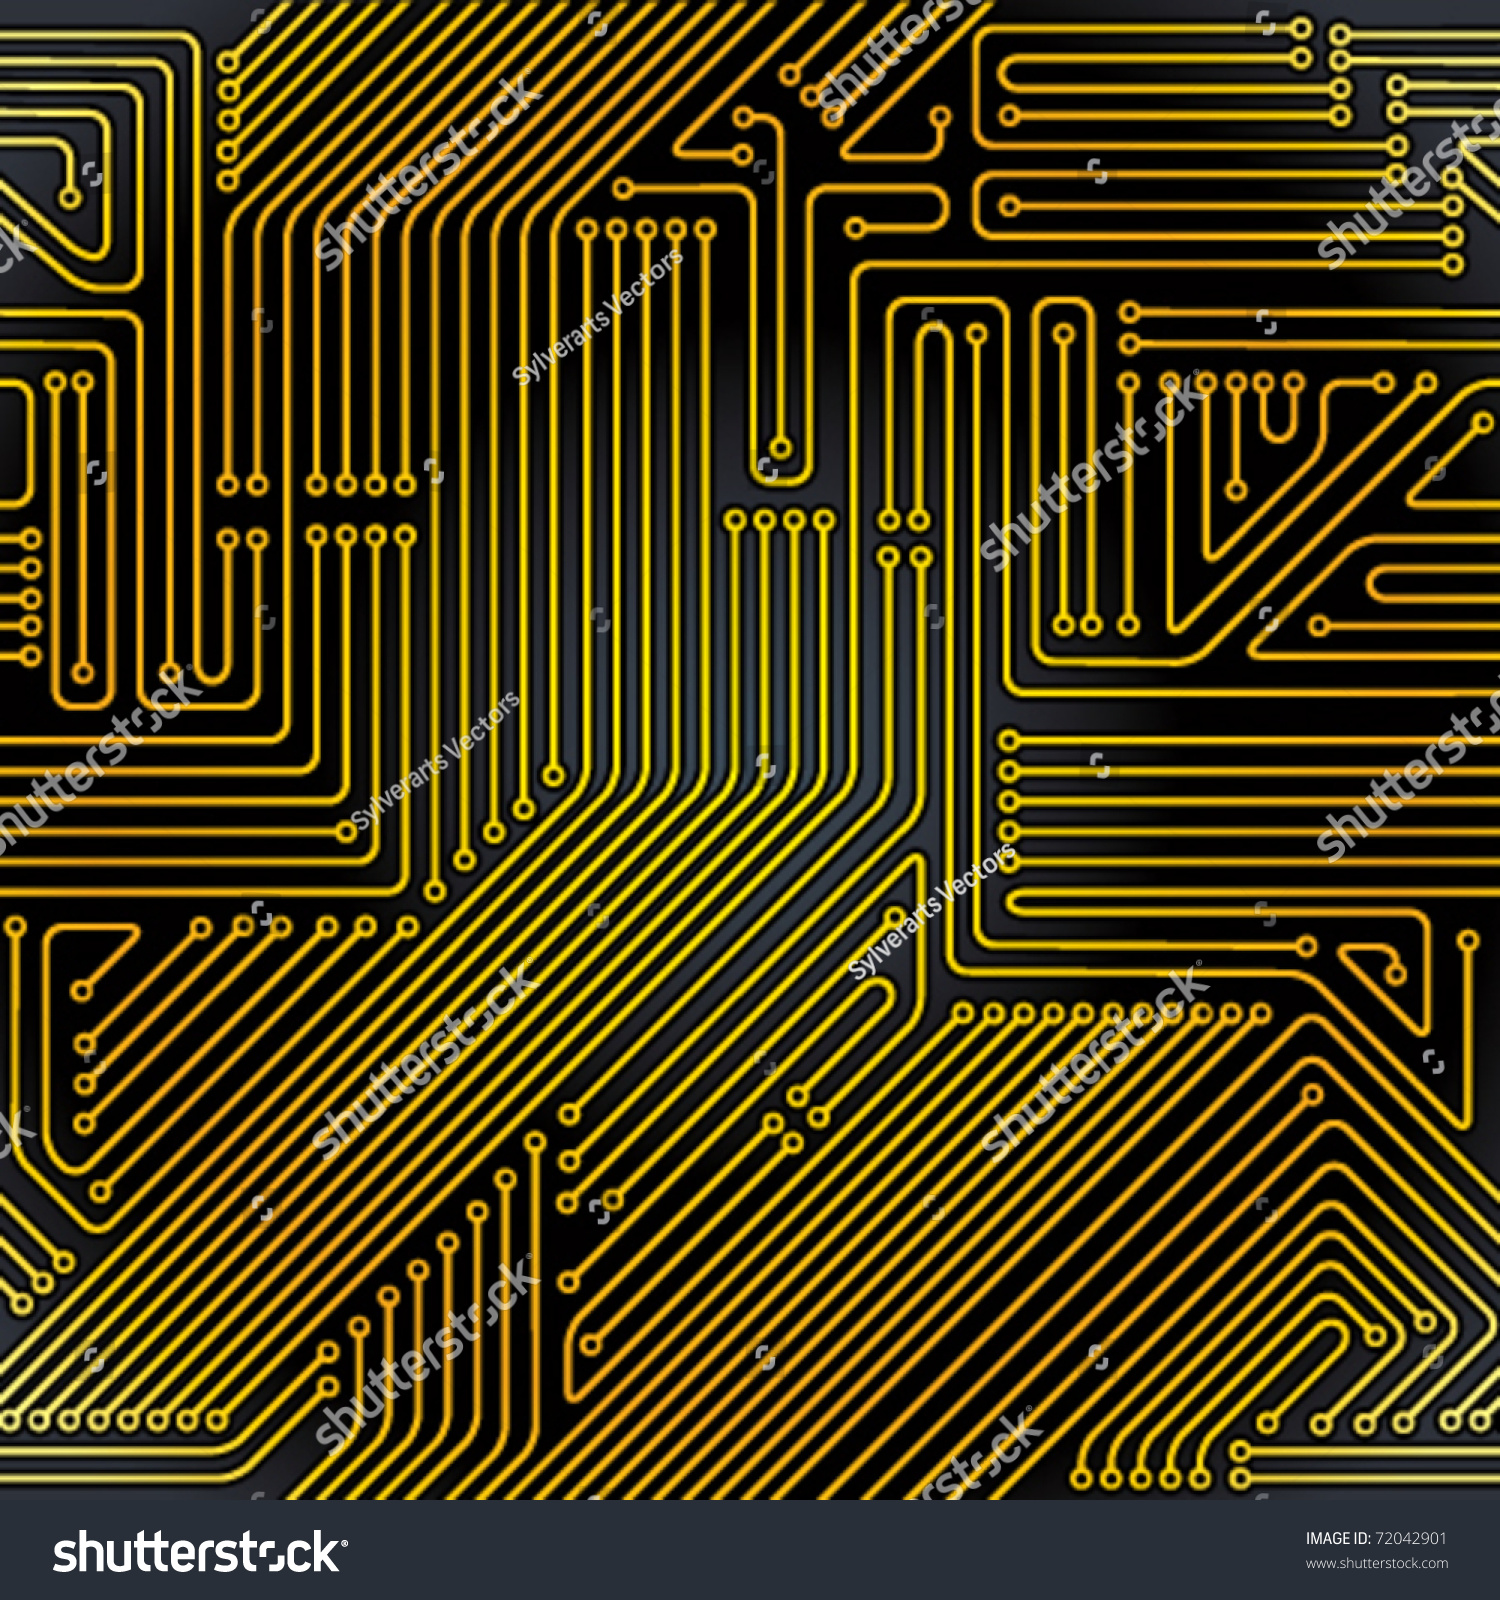 Seamless Pattern Computer Circuit Board Electronic Stock Vector Orange Themed Drawing Clipart Illustration Technology Background